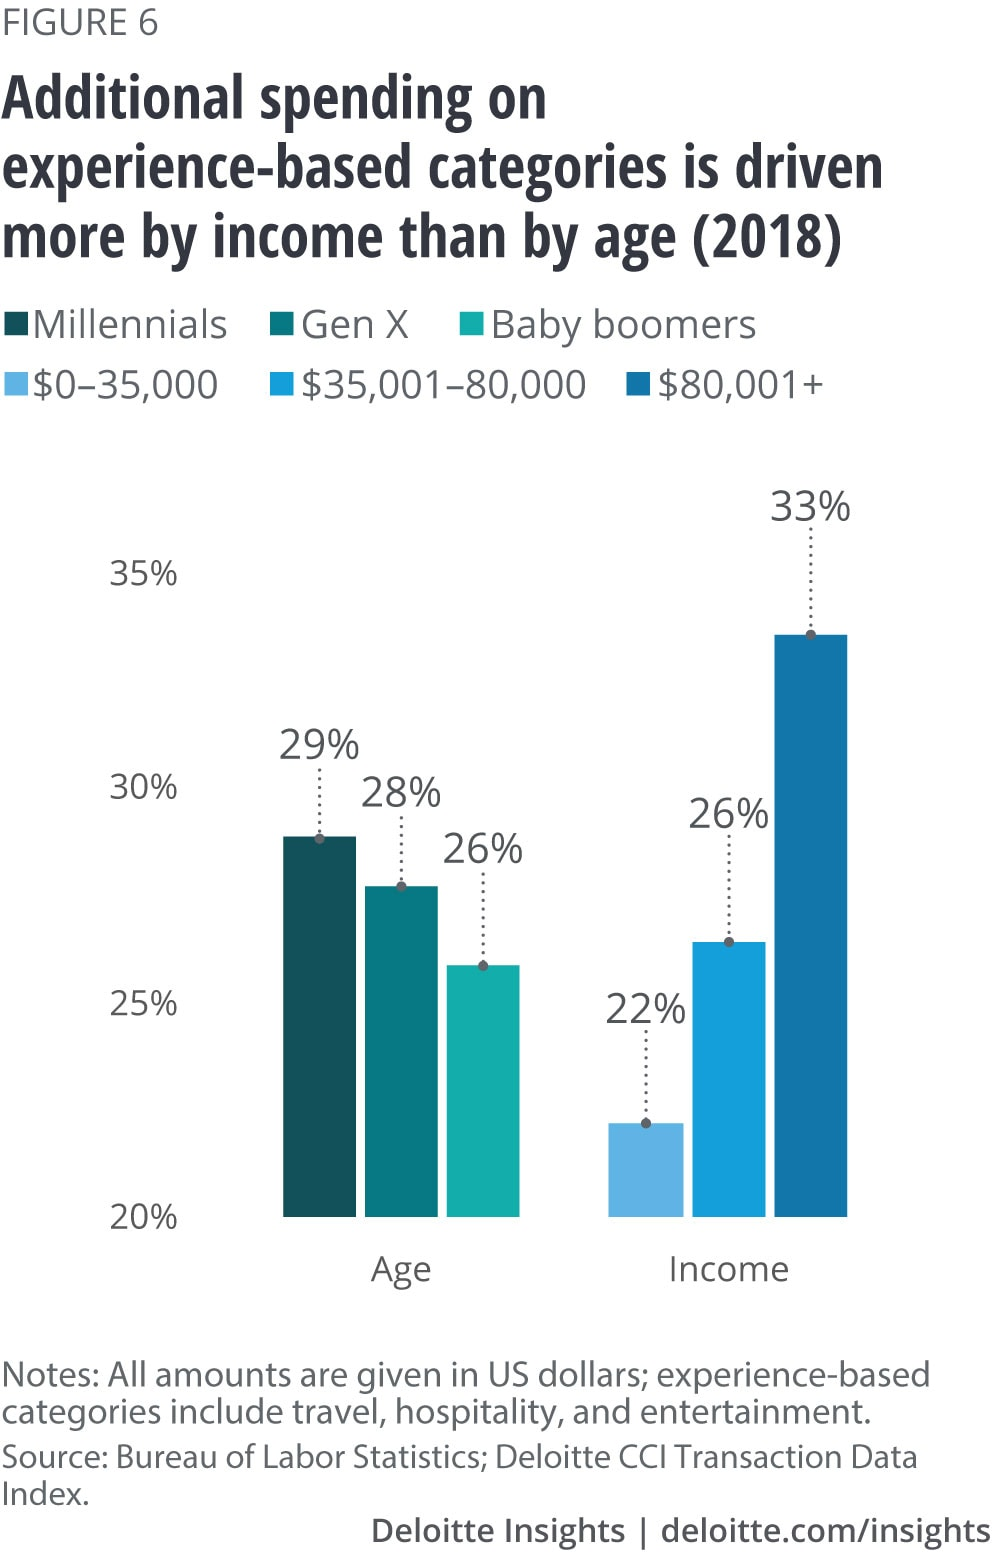 Additional spending on experience-based categories is driven more by income than by age (2018)